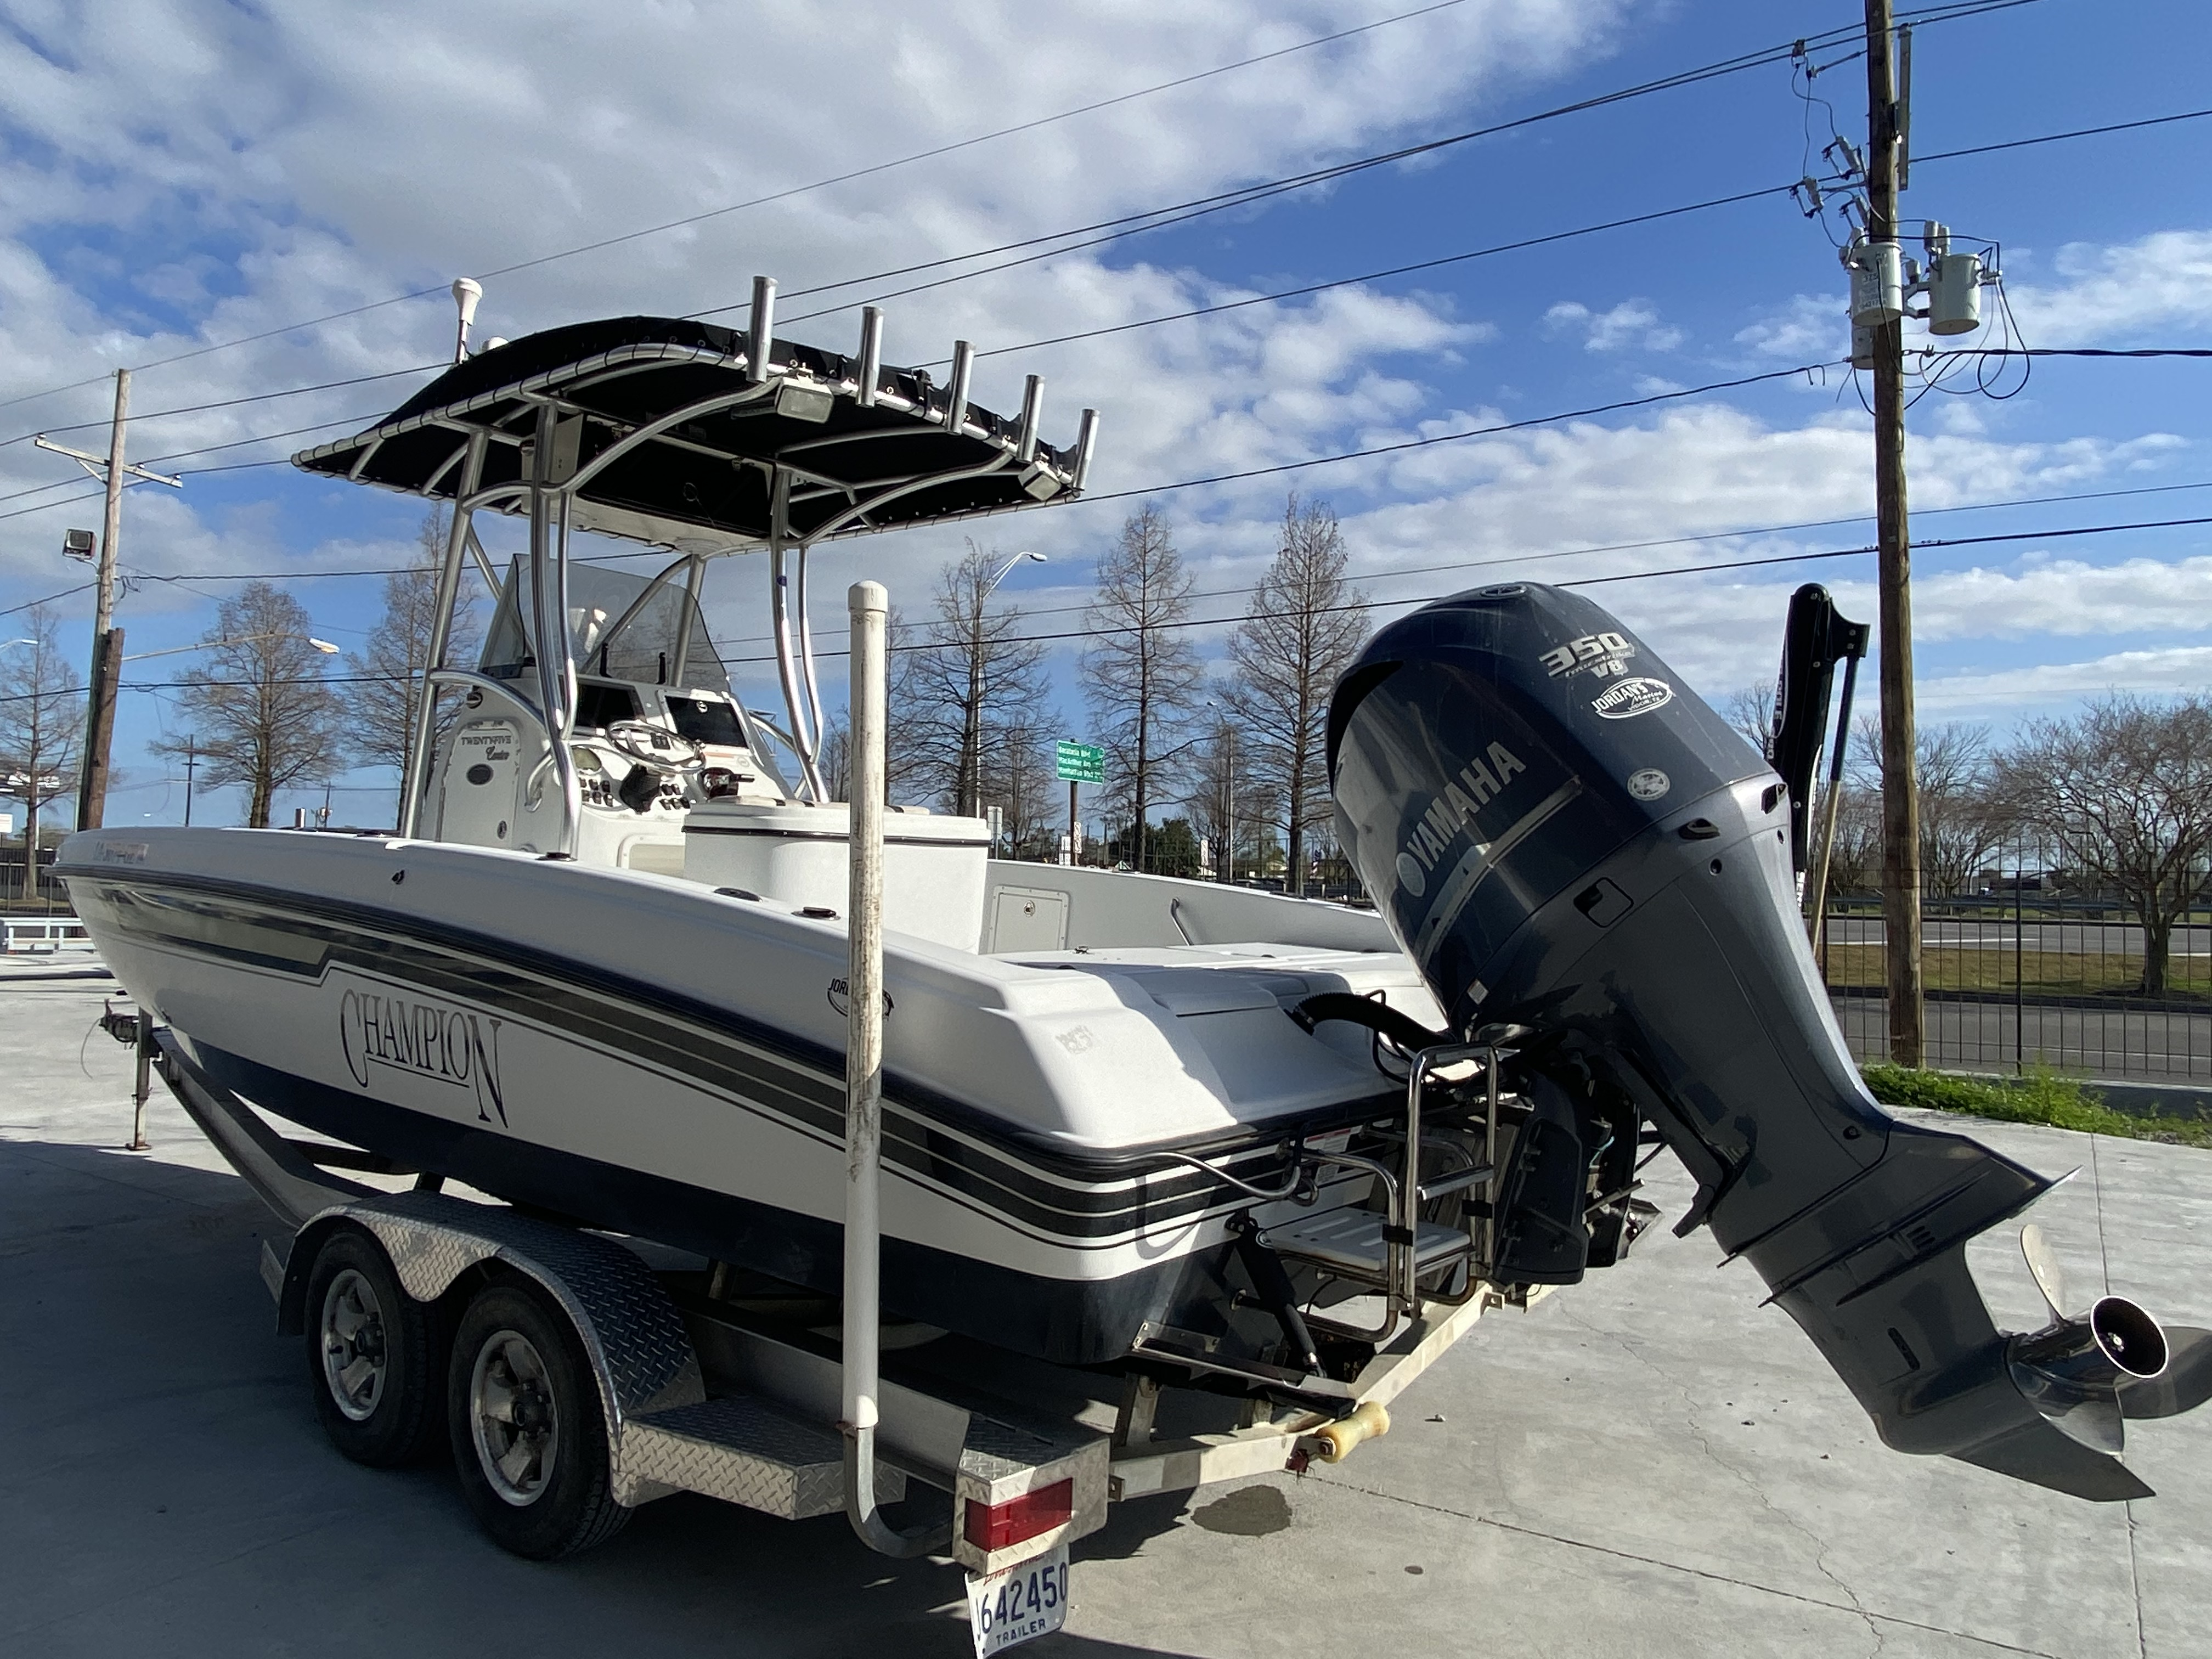 2010 Champion boat for sale, model of the boat is 25 BAY & Image # 12 of 25